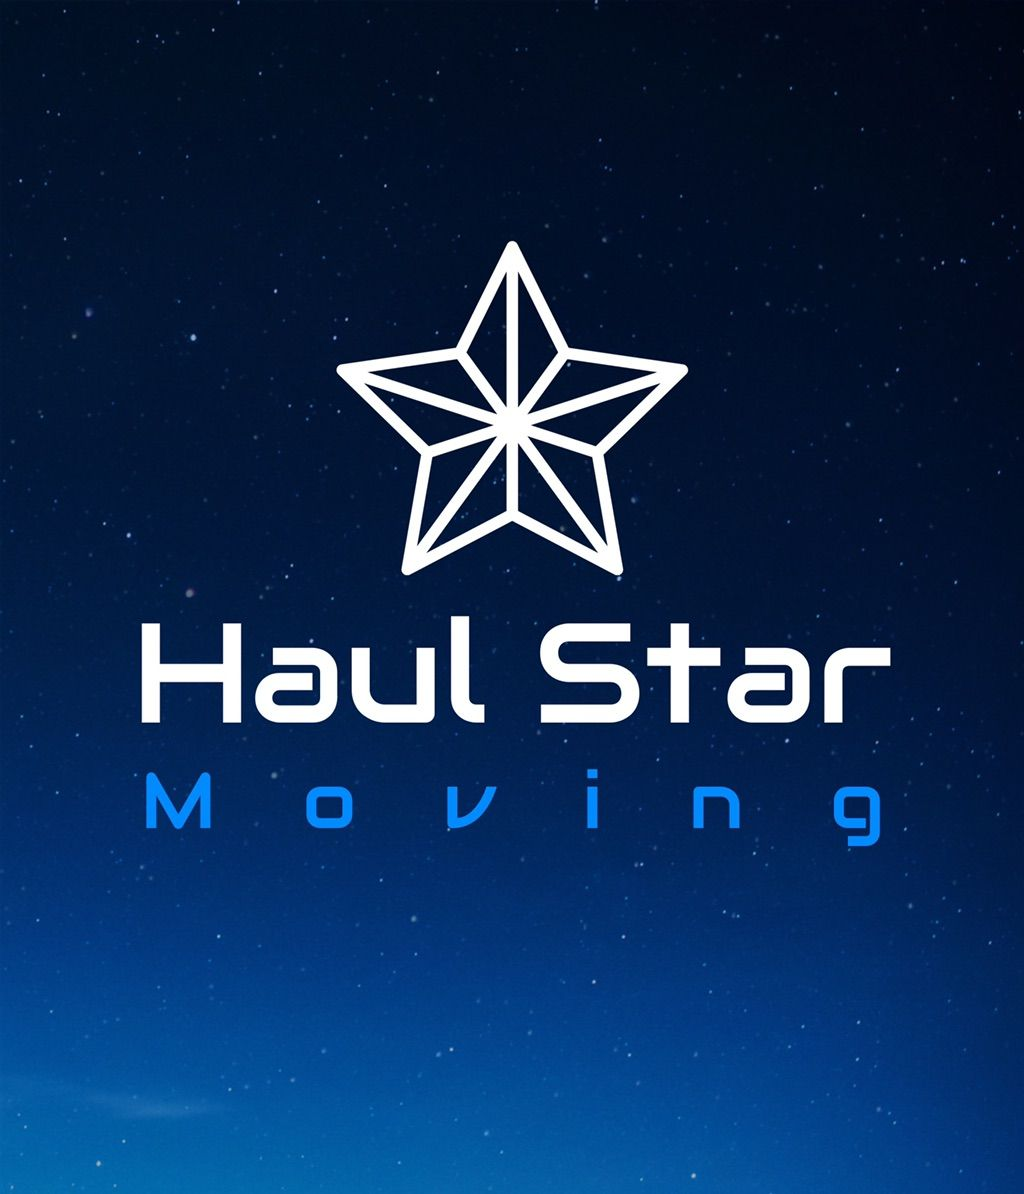 Haul Star Moving